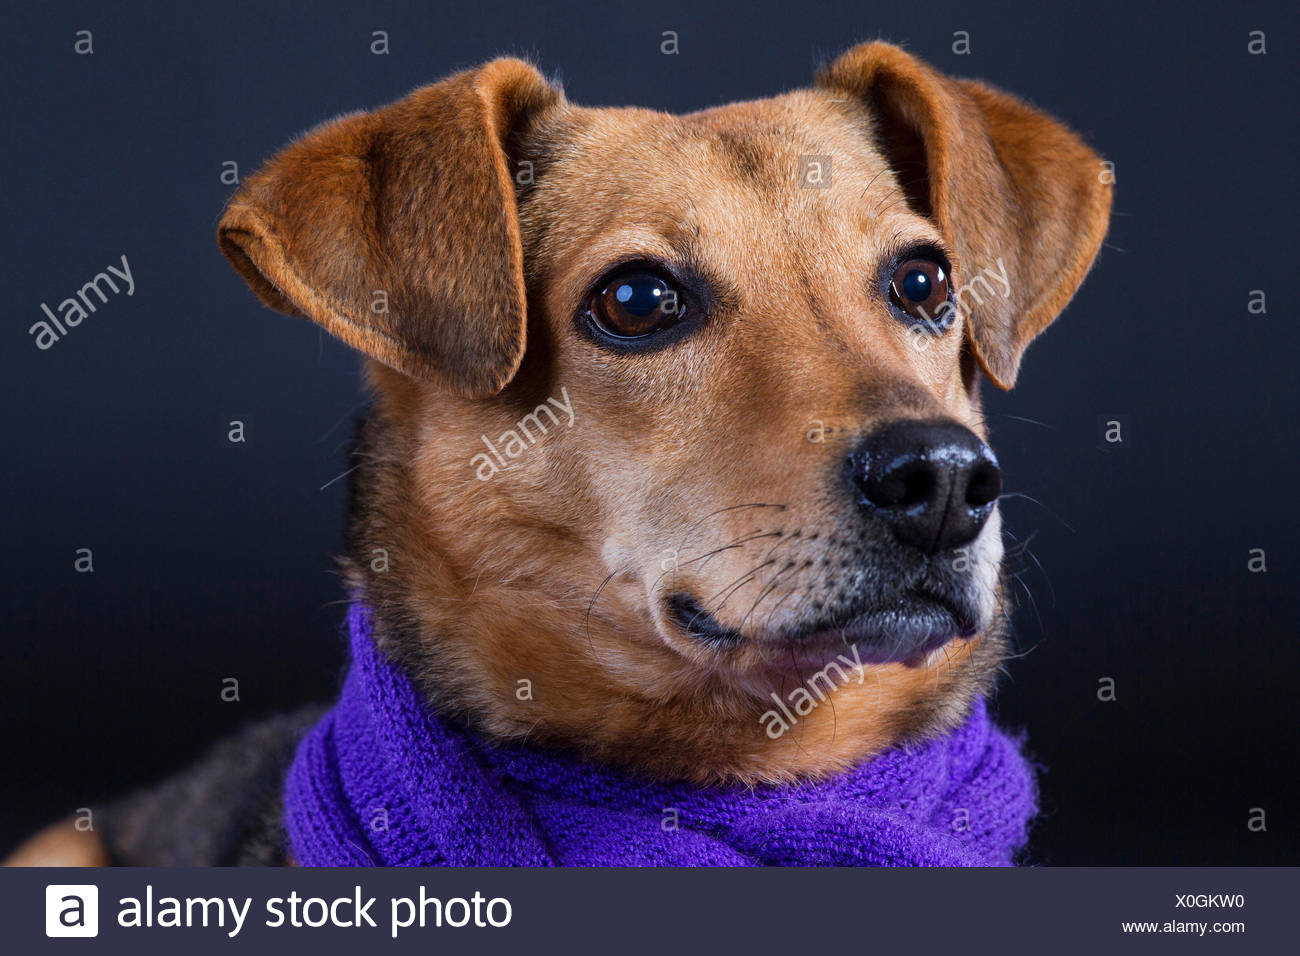 domestic dog (Canis lupus f. familiaris), with purple scarf in front of black background, portrait - Stock Image